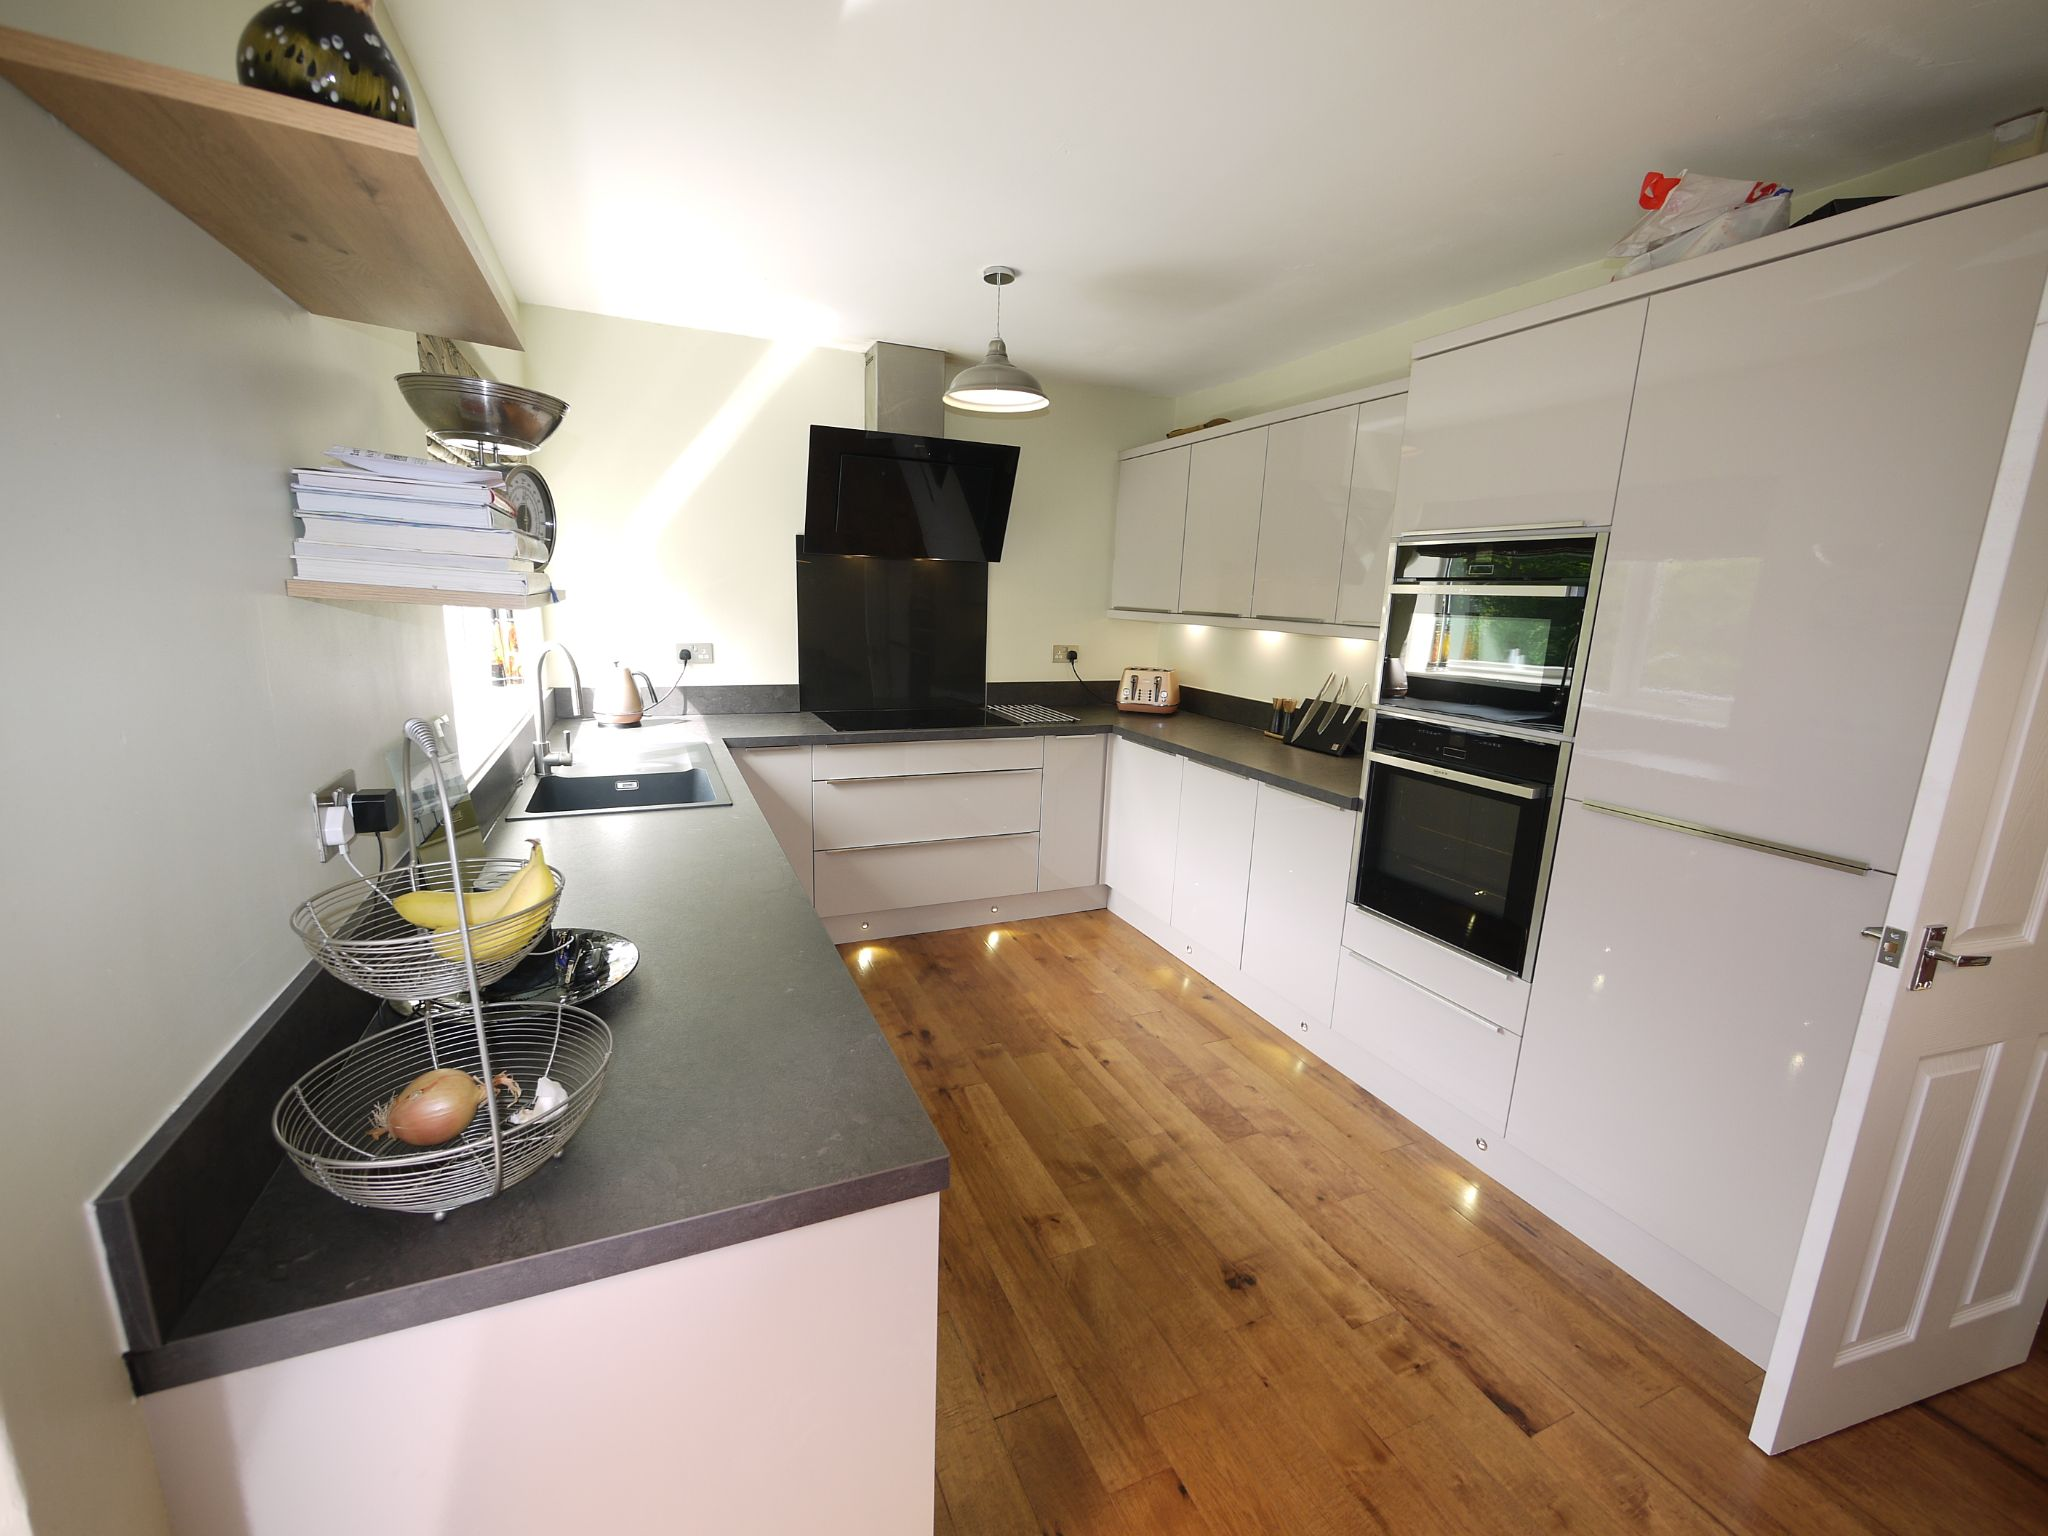 4 bedroom semi-detached house For Sale in Brighouse - Dining Kitchen 2.